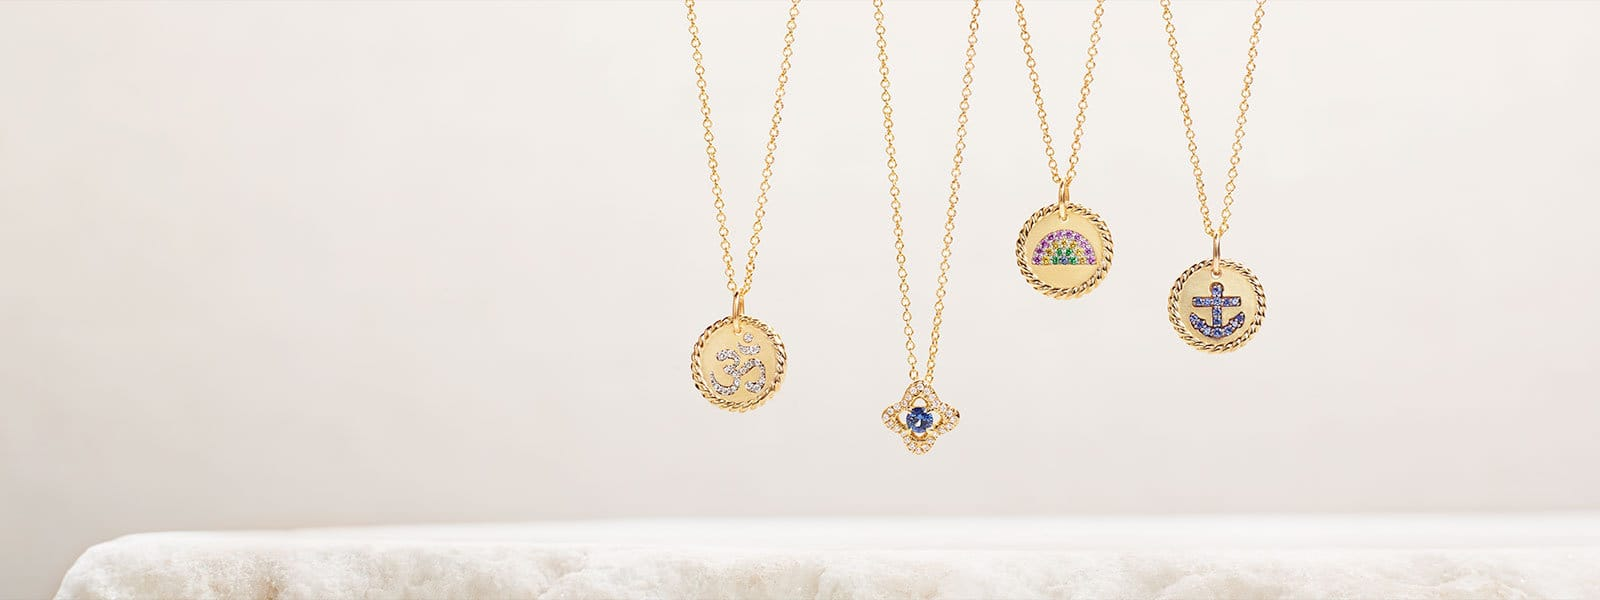 Cable Collectibles® and Venetian Quatrefoil necklaces in 18K yellow gold with diamonds and sapphires.